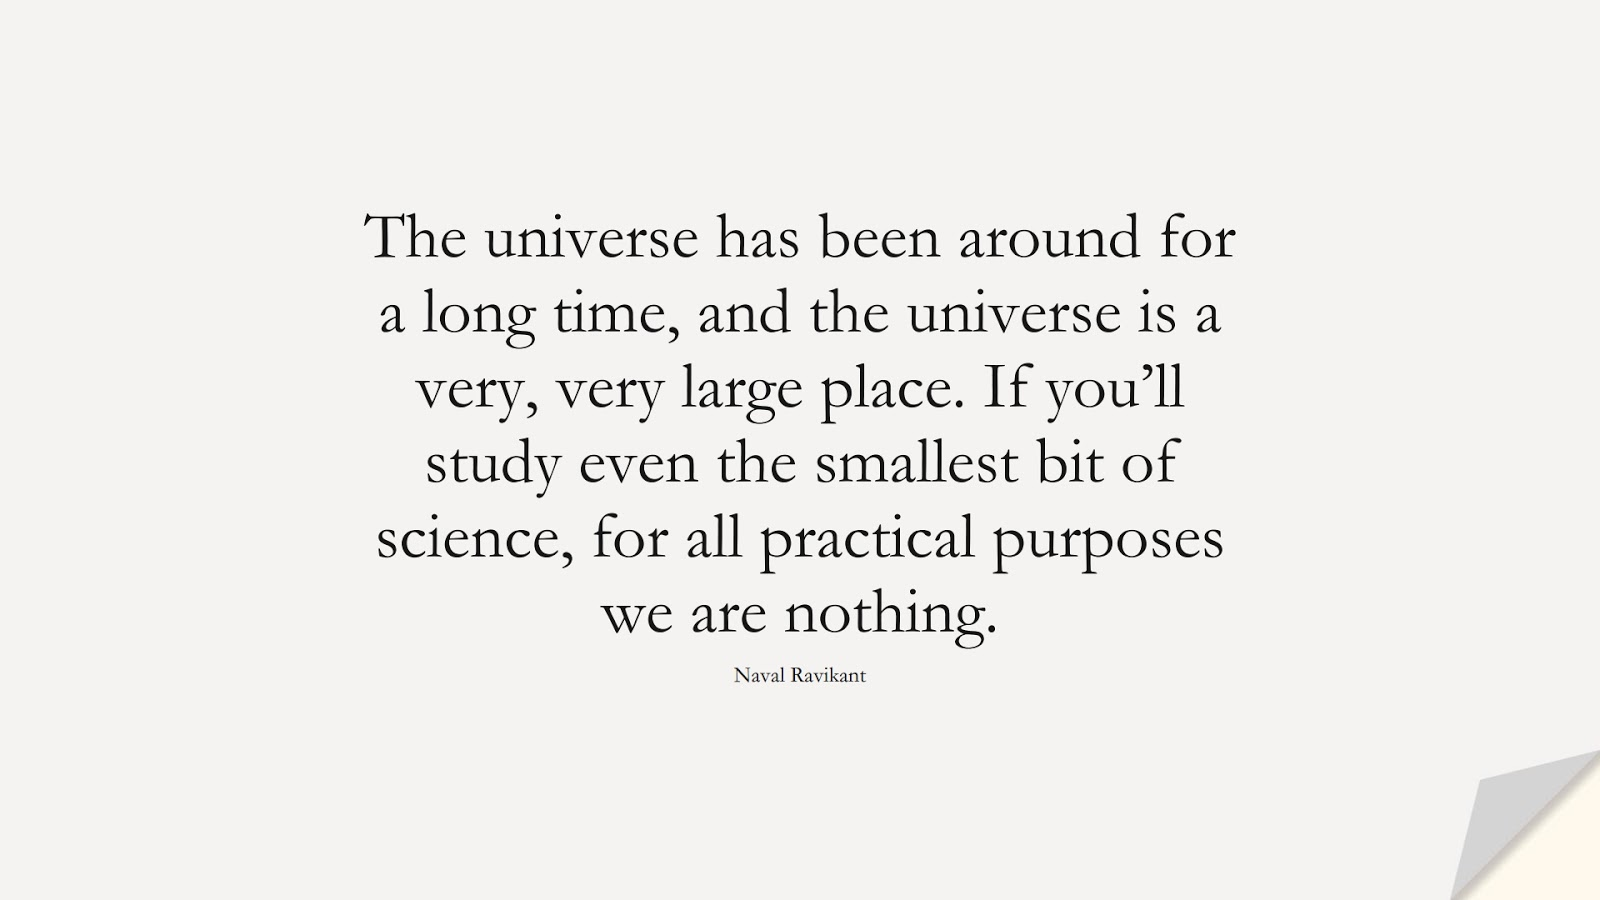 The universe has been around for a long time, and the universe is a very, very large place. If you'll study even the smallest bit of science, for all practical purposes we are nothing. (Naval Ravikant);  #StoicQuotes